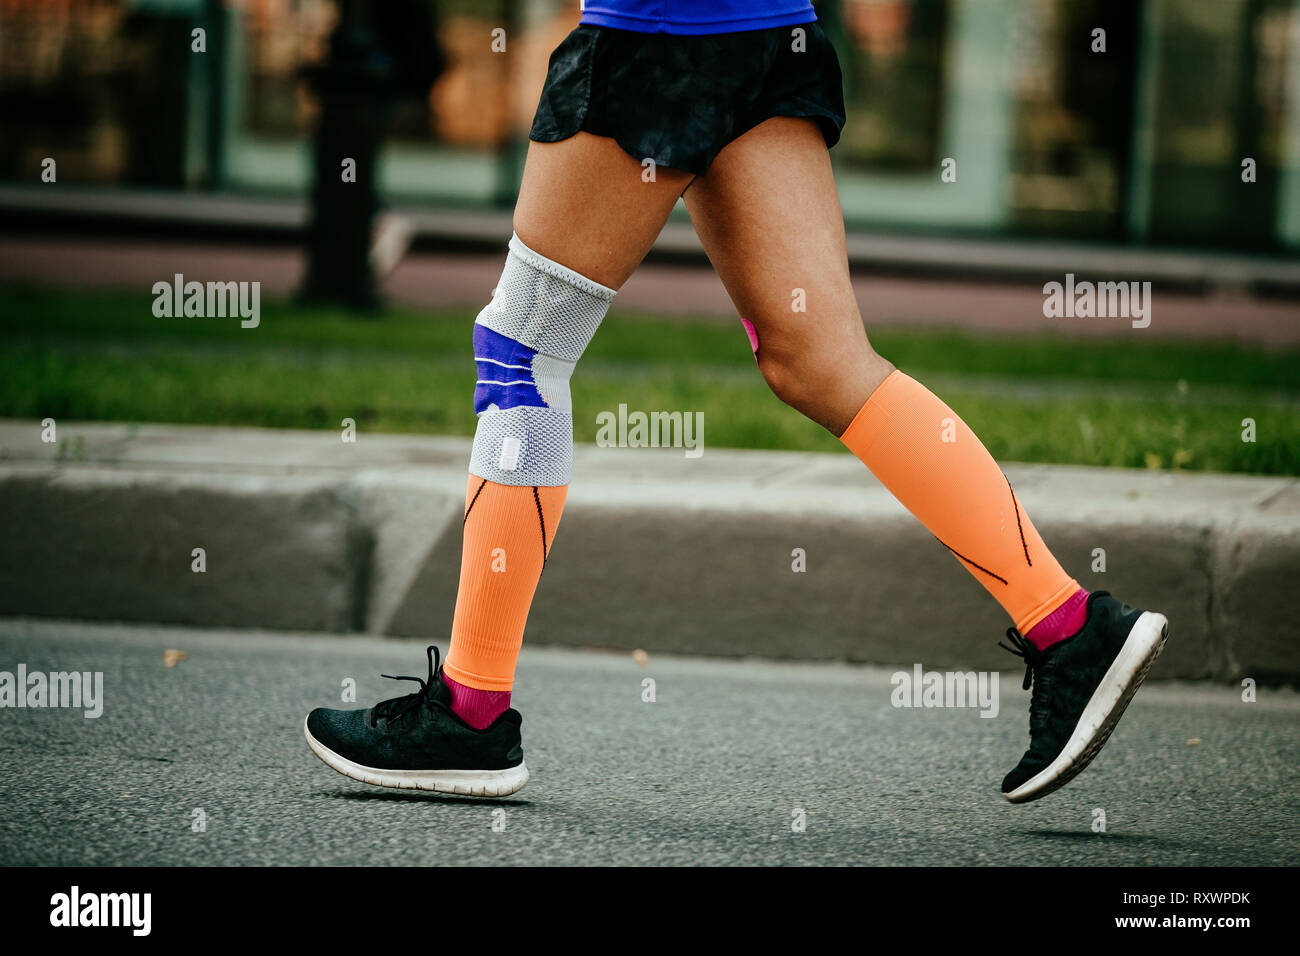 women feet in compression socks and kneepad on knee running - Stock Image